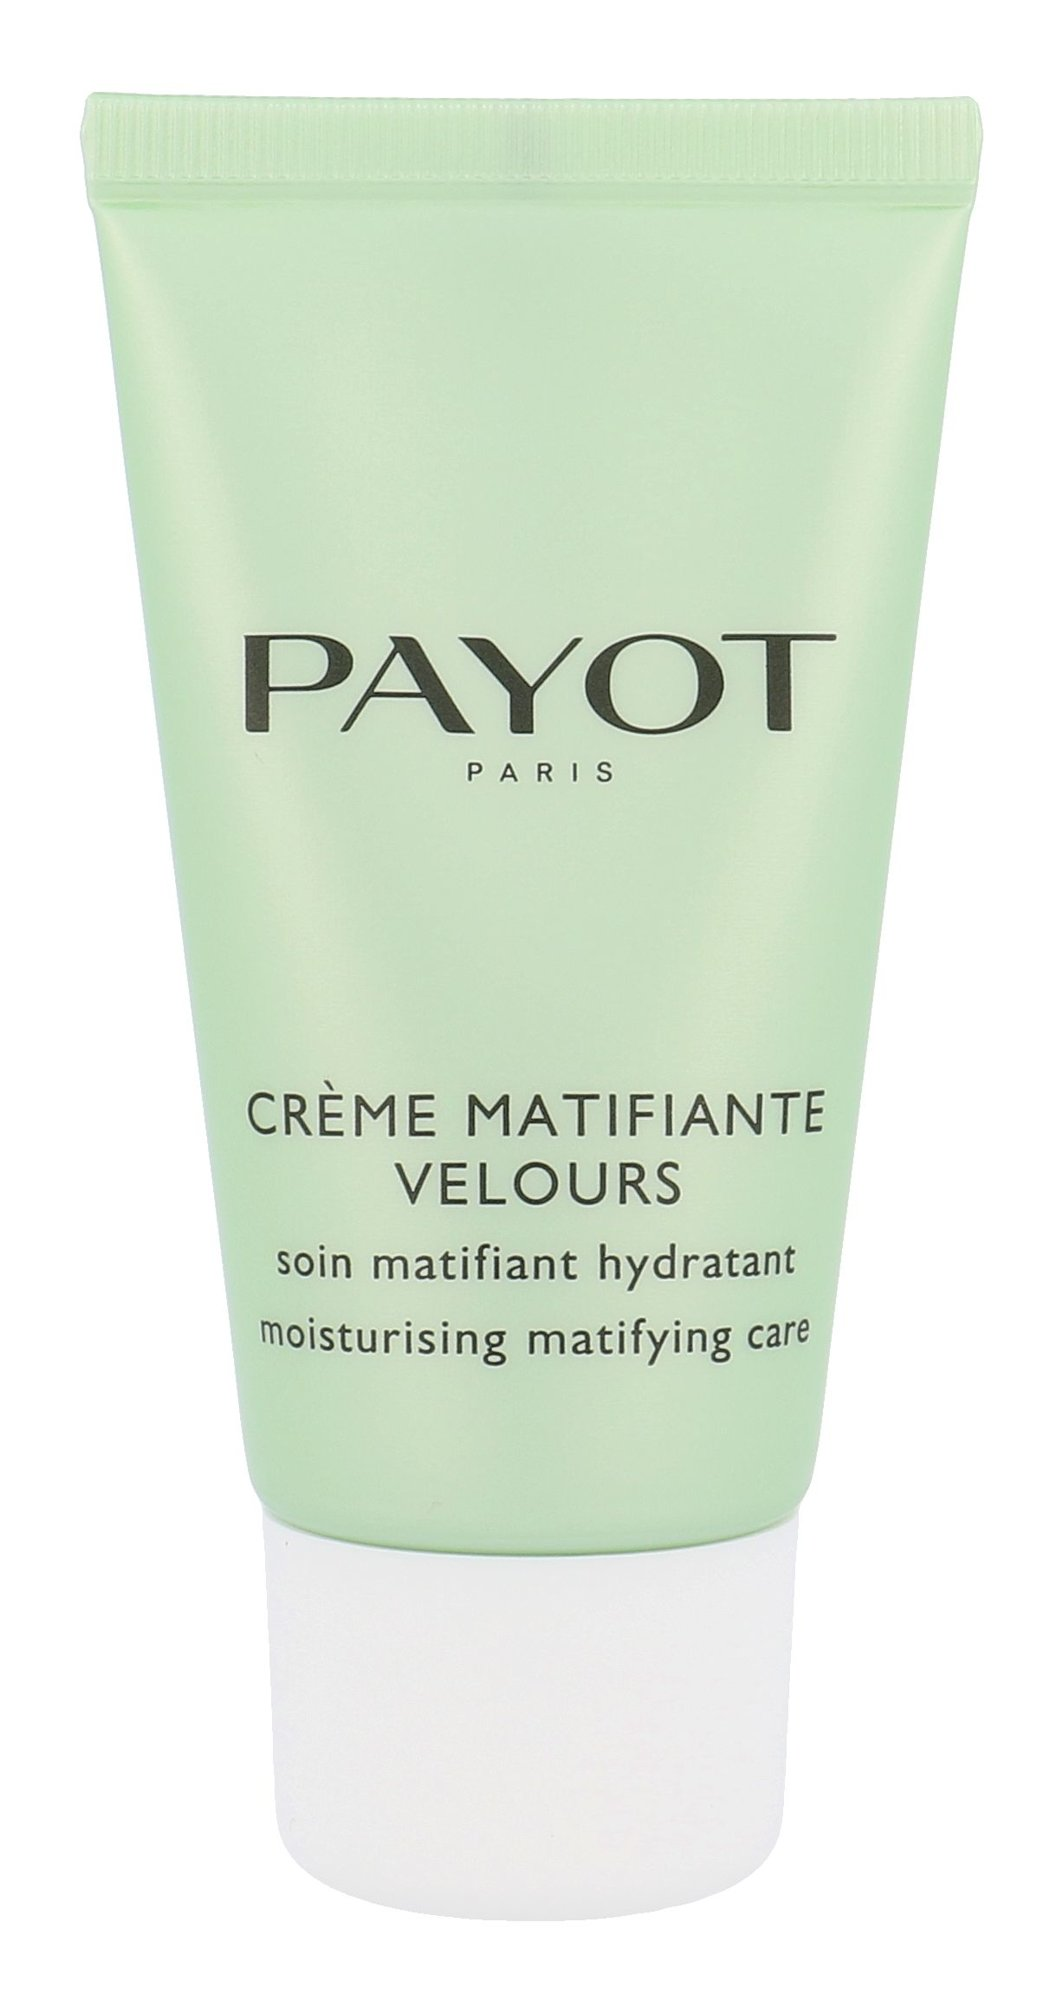 PAYOT Expert Points Noirs Cosmetic 50ml  Moisturizing Matifying Care